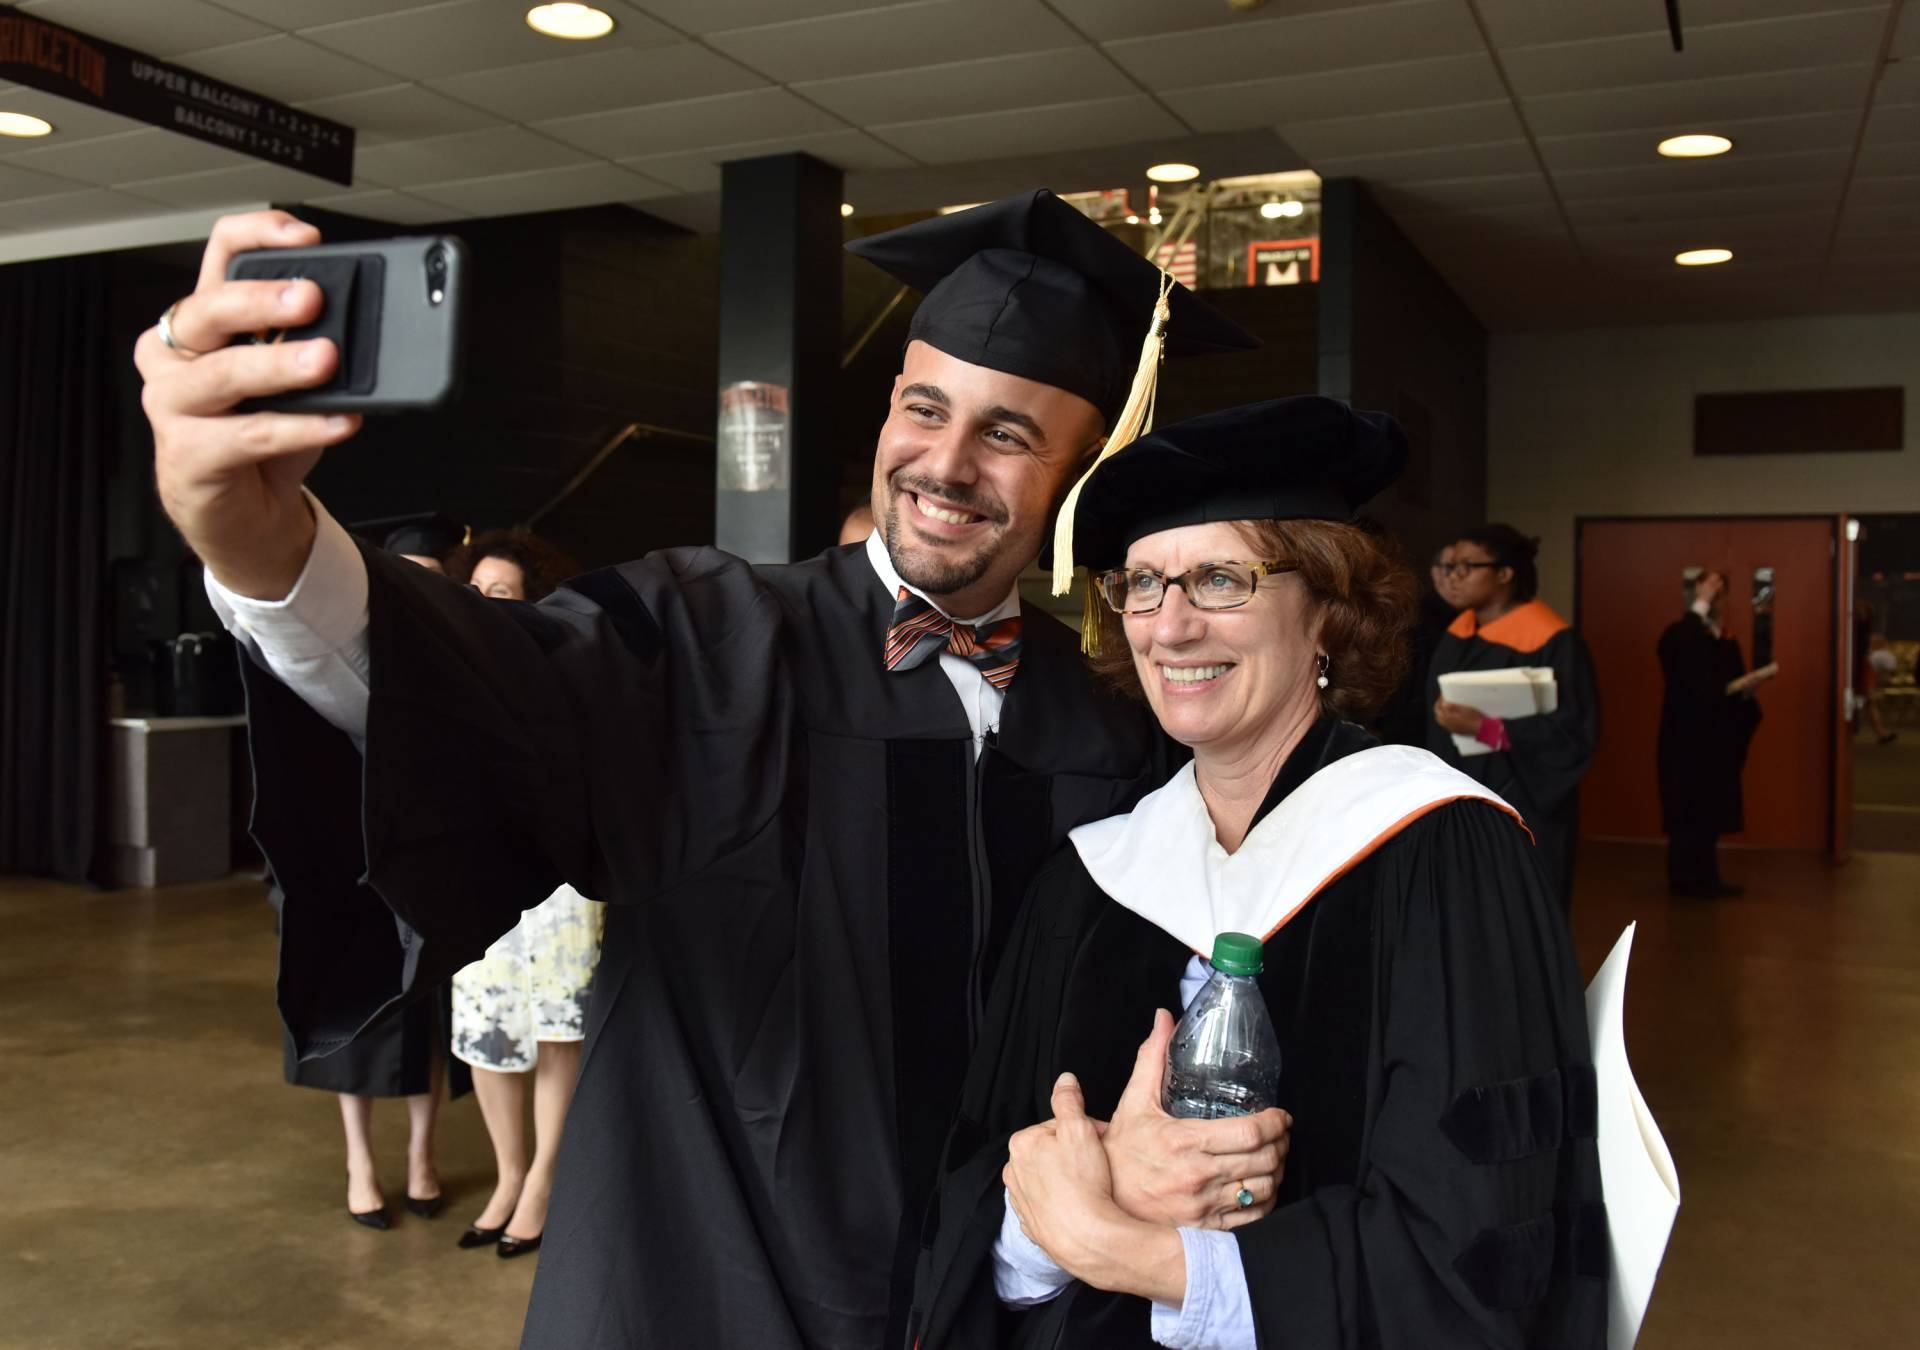 Student takes selfie with advisor